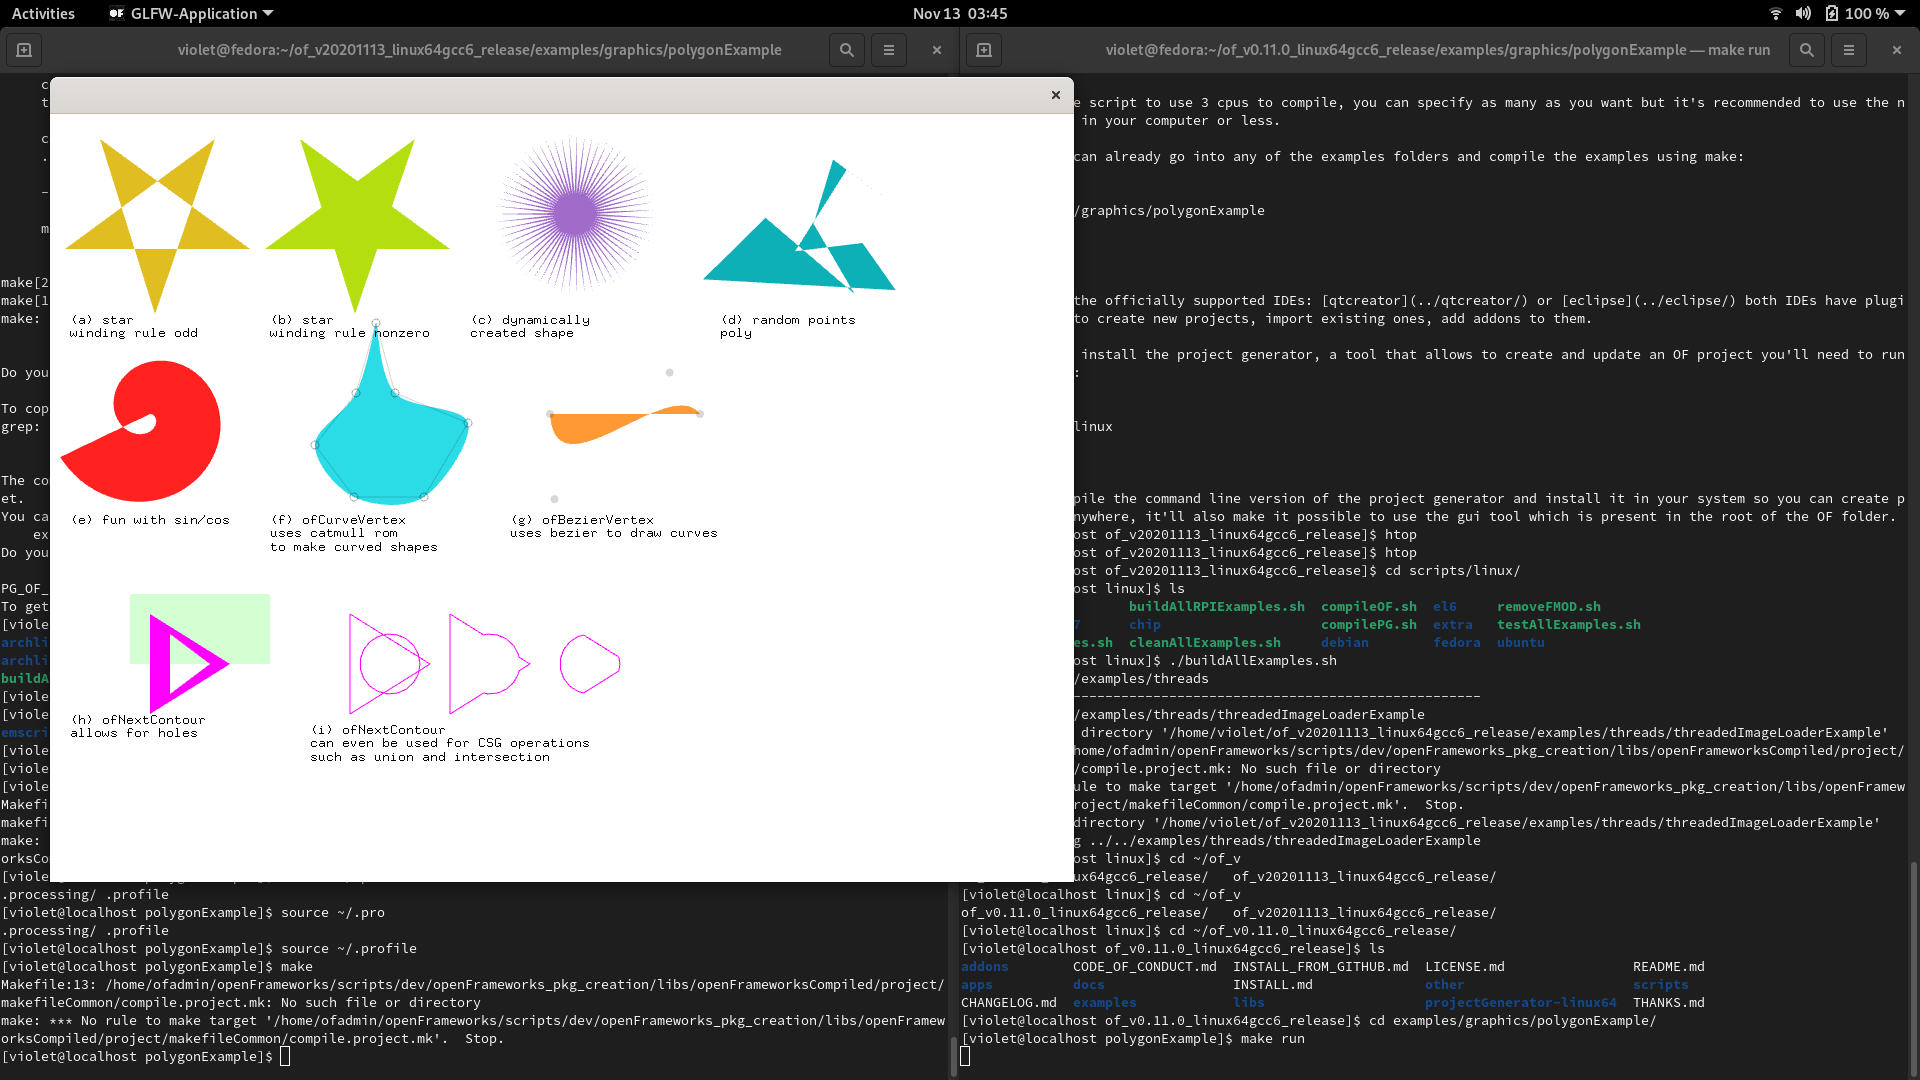 Difficulty Getting Up and Running - Install / Makefile Bugs on Fedora - linux - openFrameworks